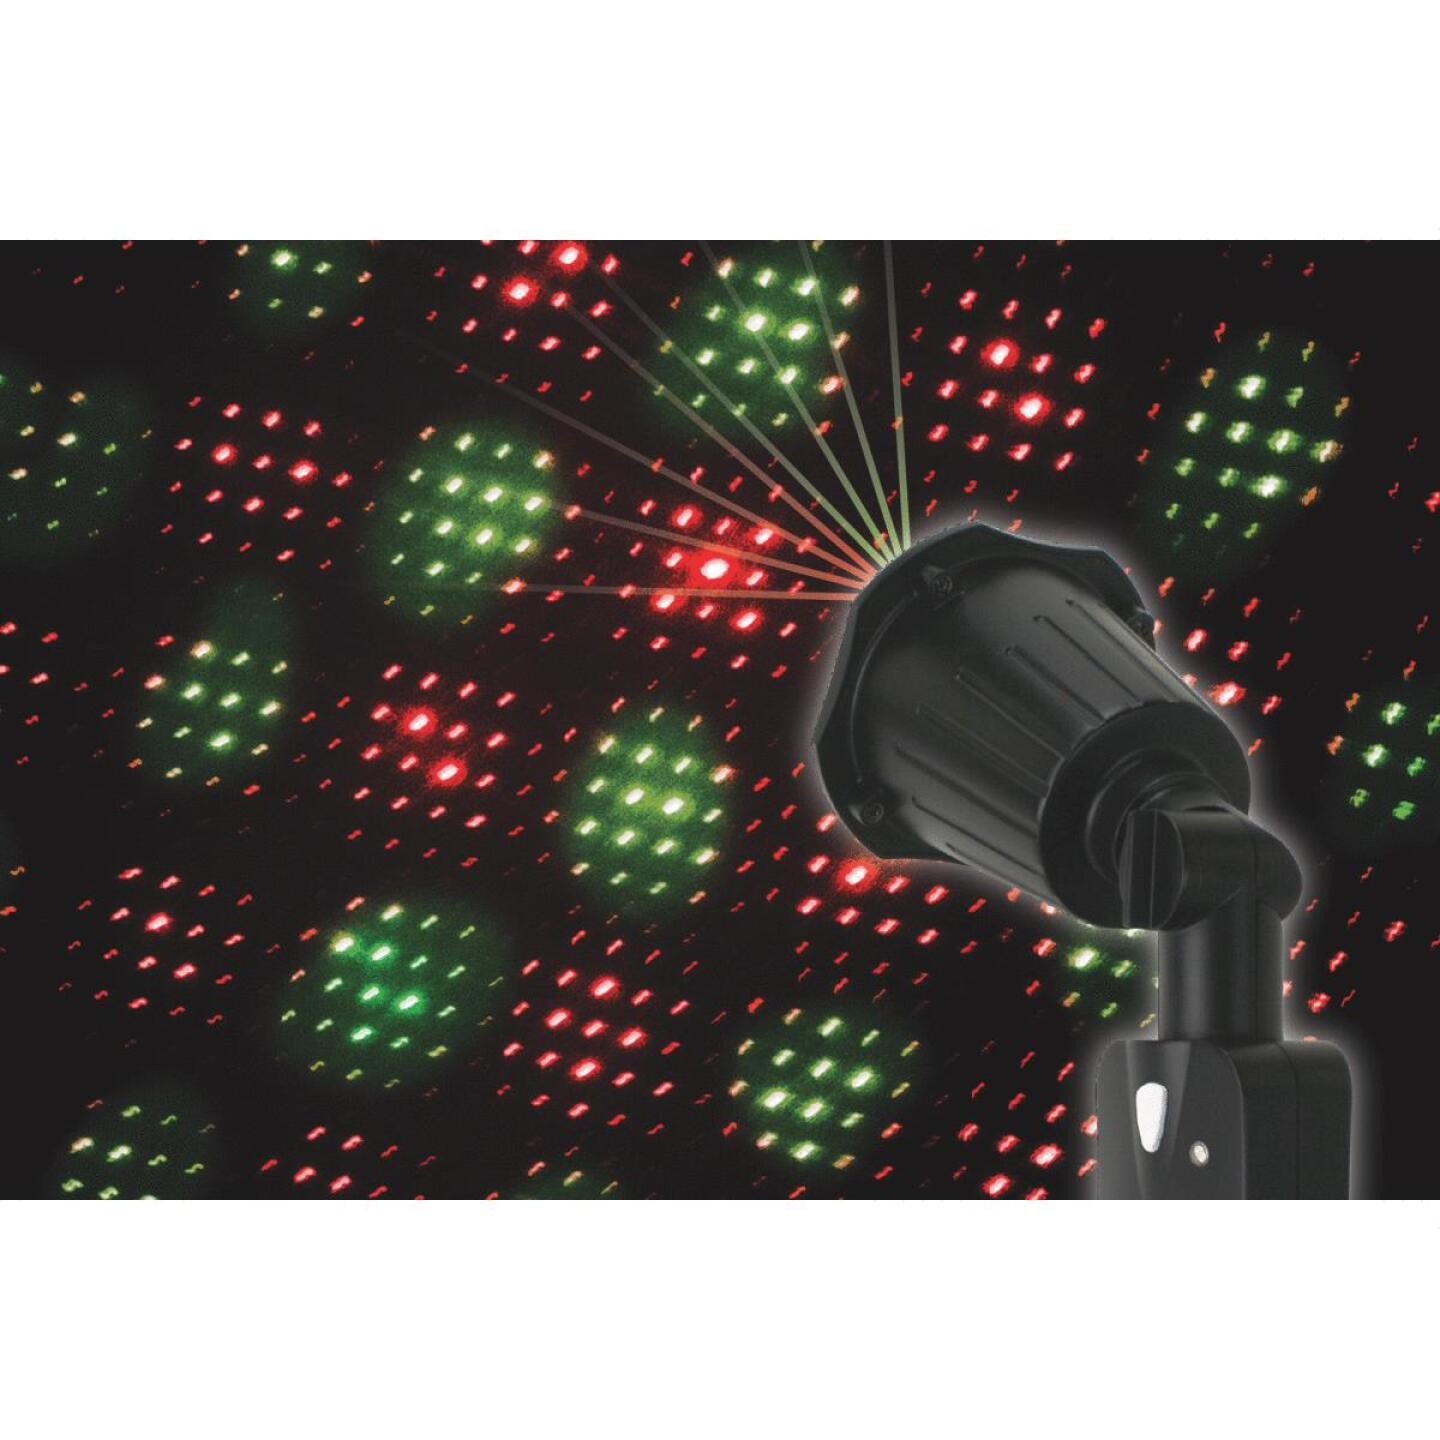 Prime Wire & Cable LED 5W Holiday Laser Light Projector Image 5